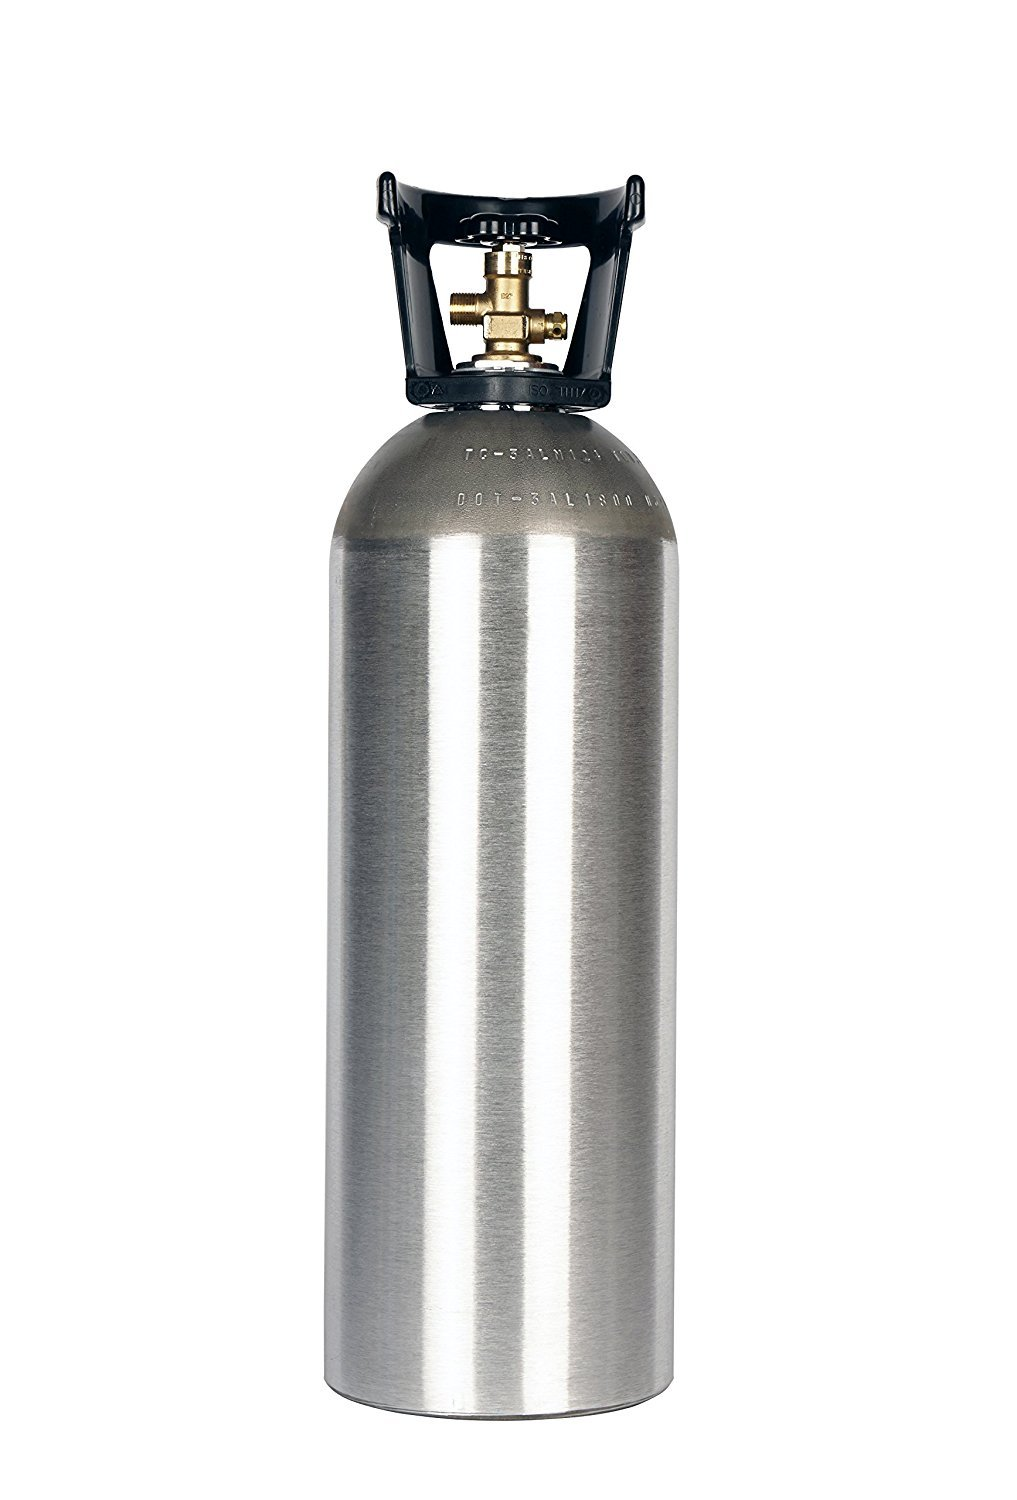 New 20 lb Aluminum CO2 Cylinder with CGA320 Valve, Handle, and Free Leak Stopper